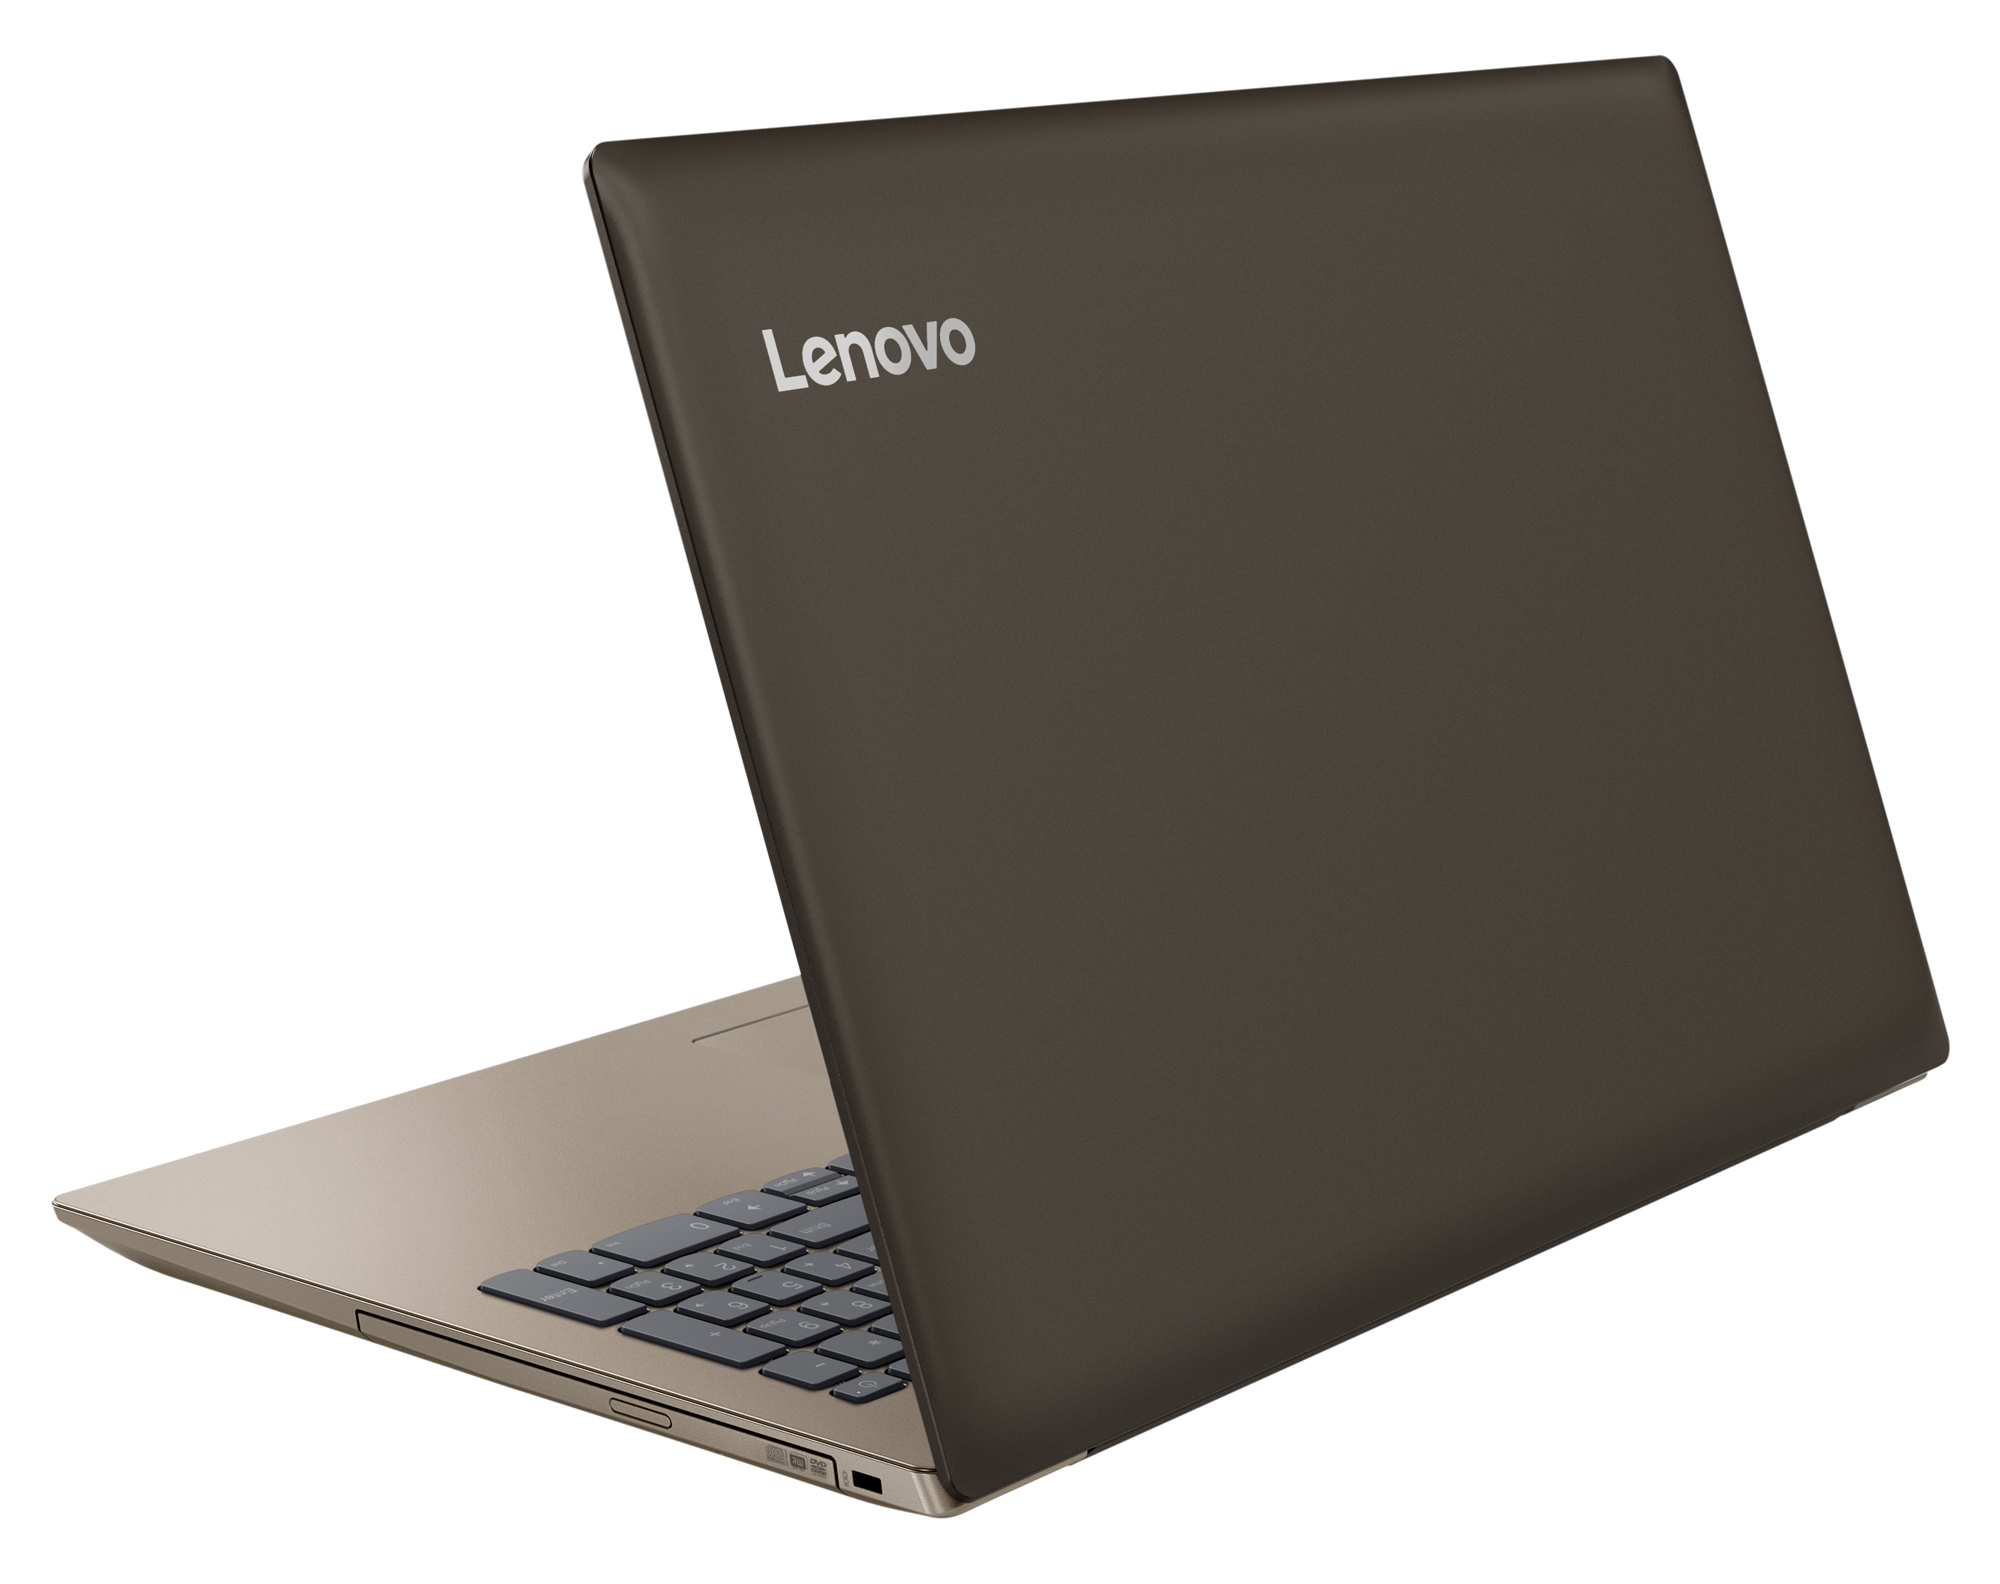 Фото  Ноутбук Lenovo ideapad 330-15 Chocolate (81DC010GRA)